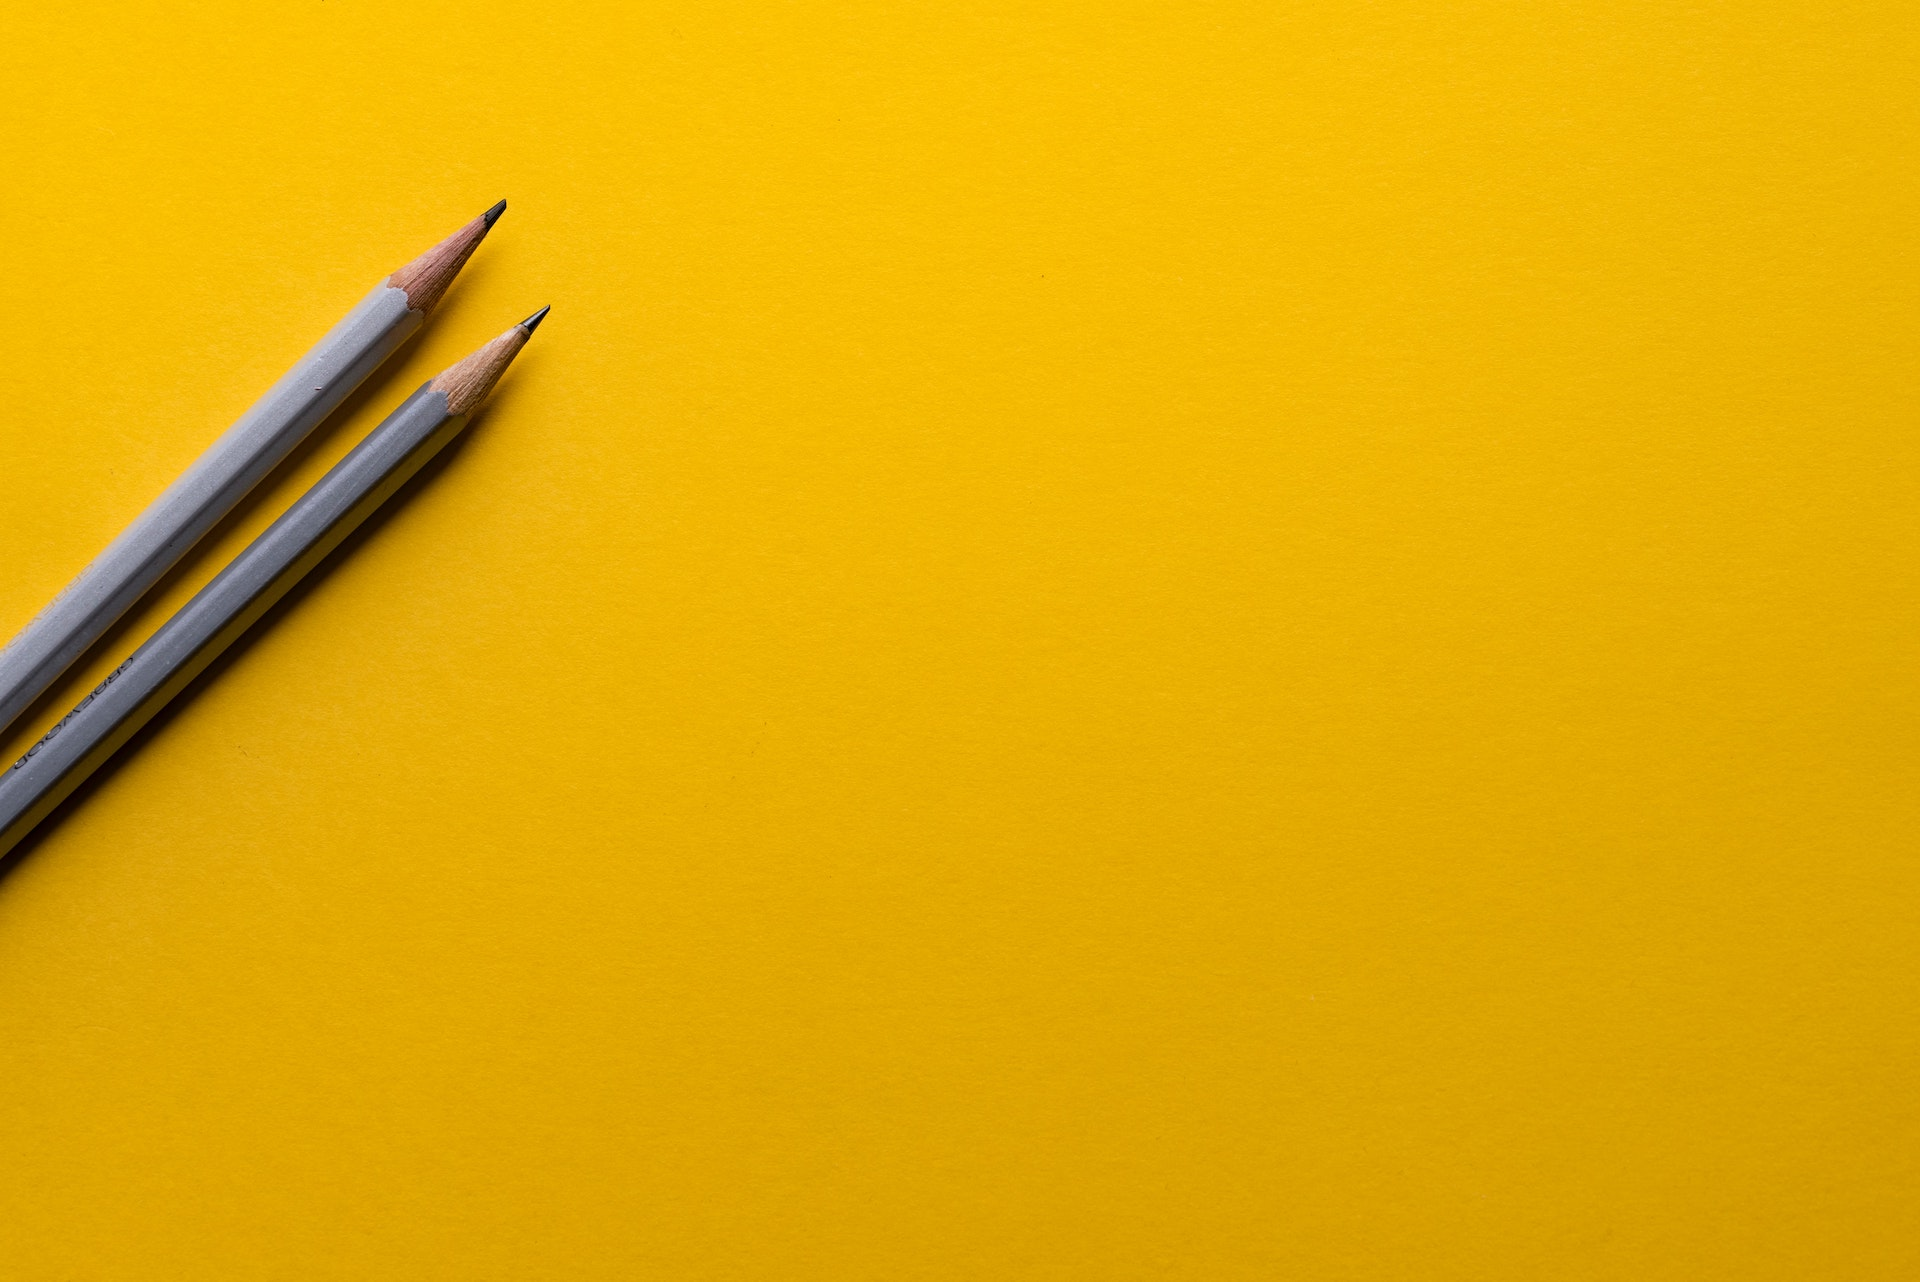 two pencils on plain yellow background